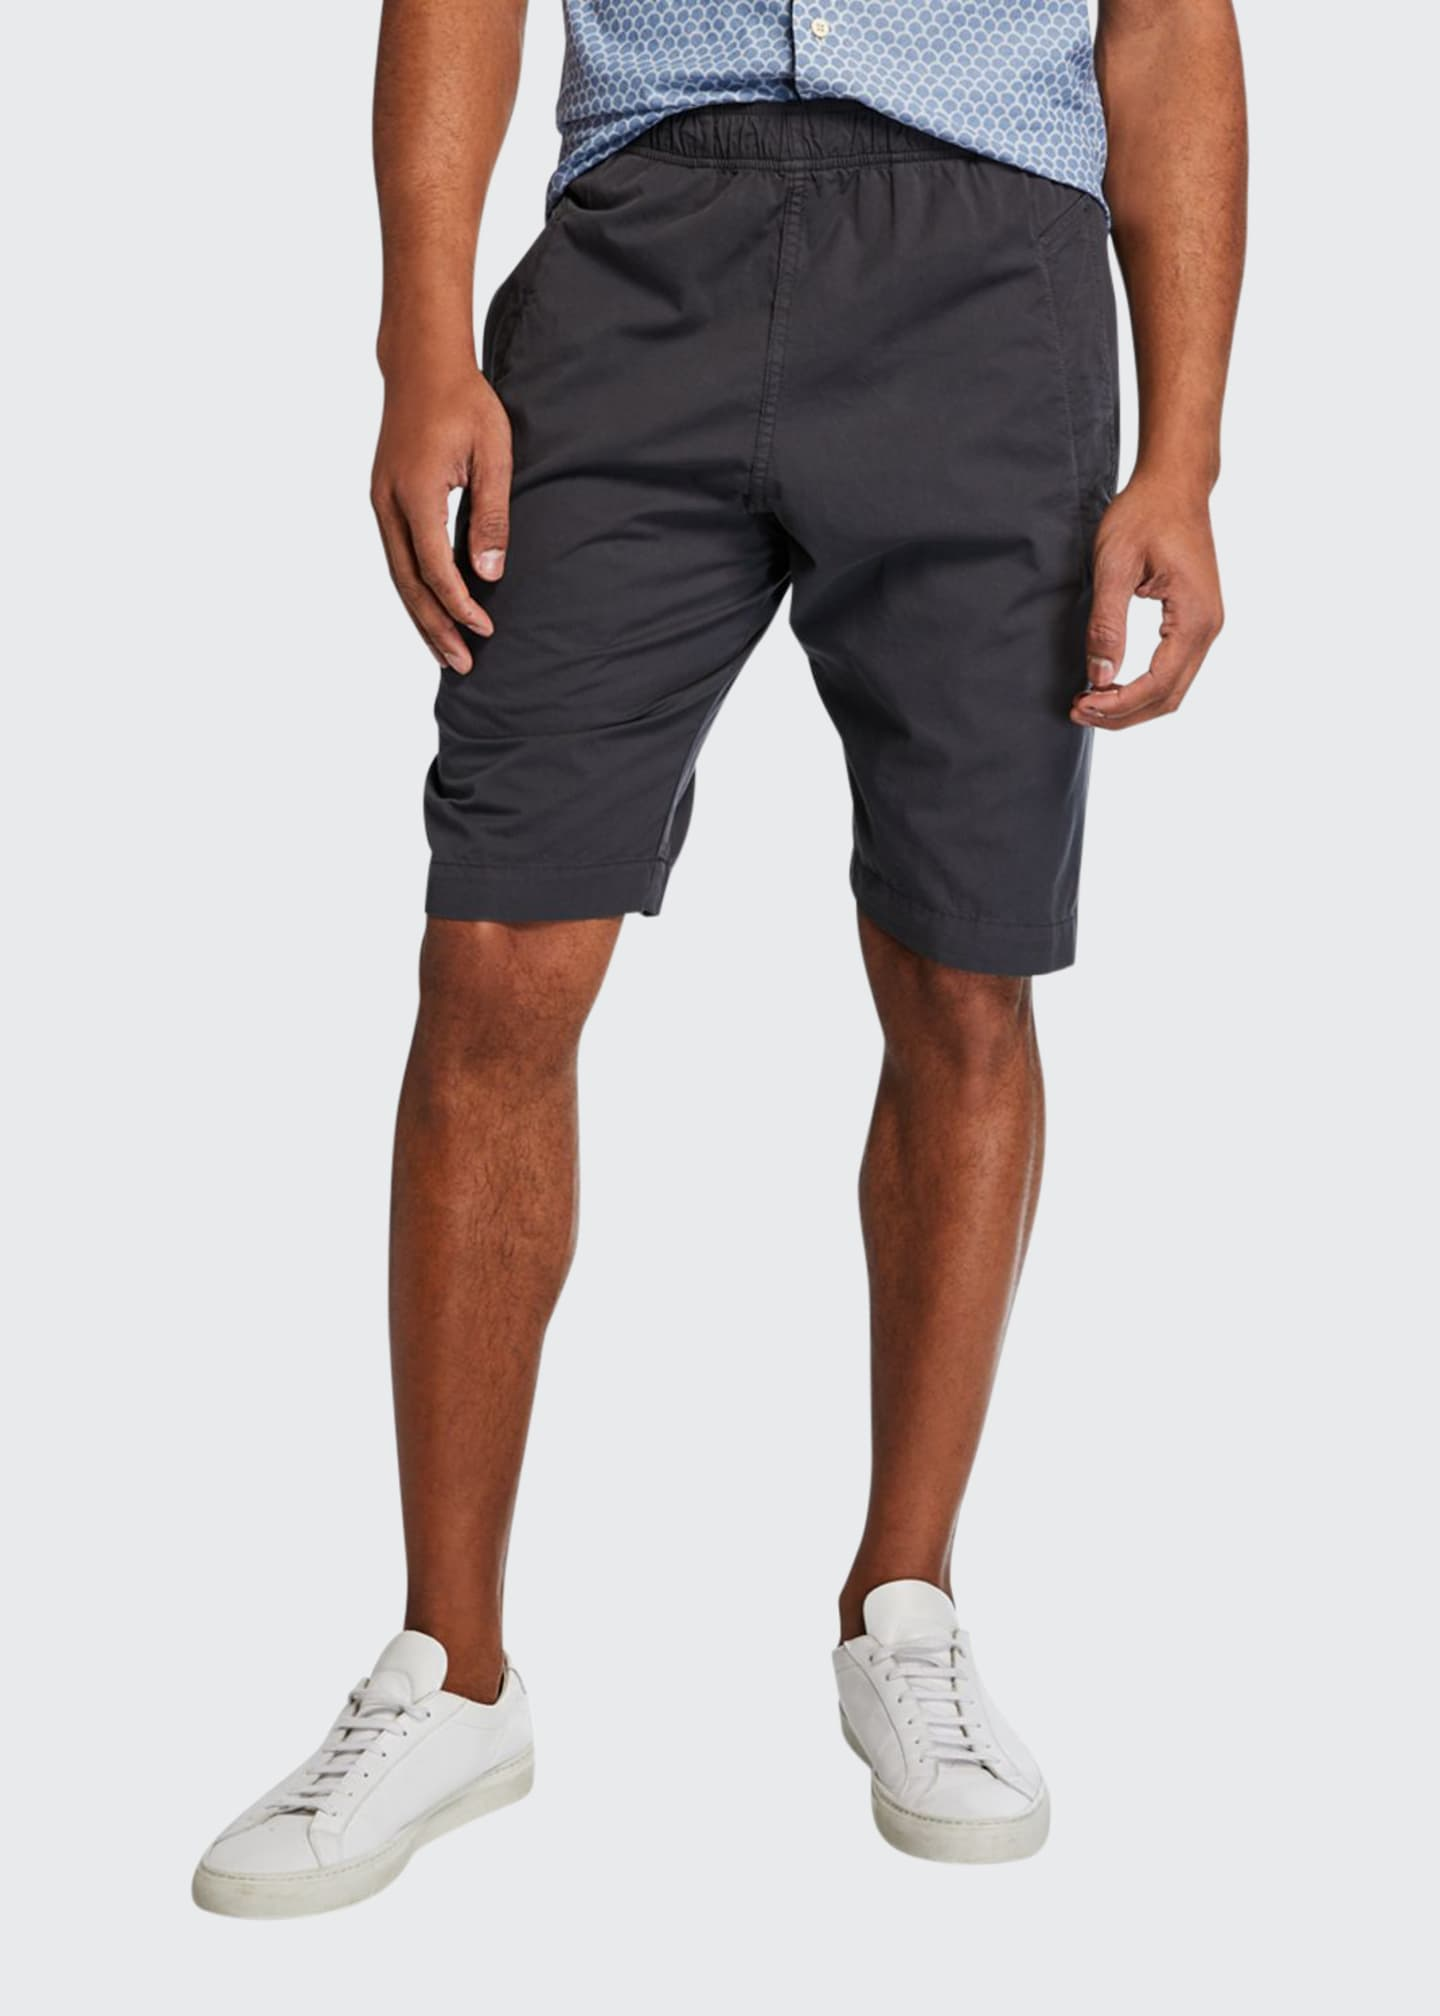 Image 1 of 3: Men's Cotton Jogger Shorts